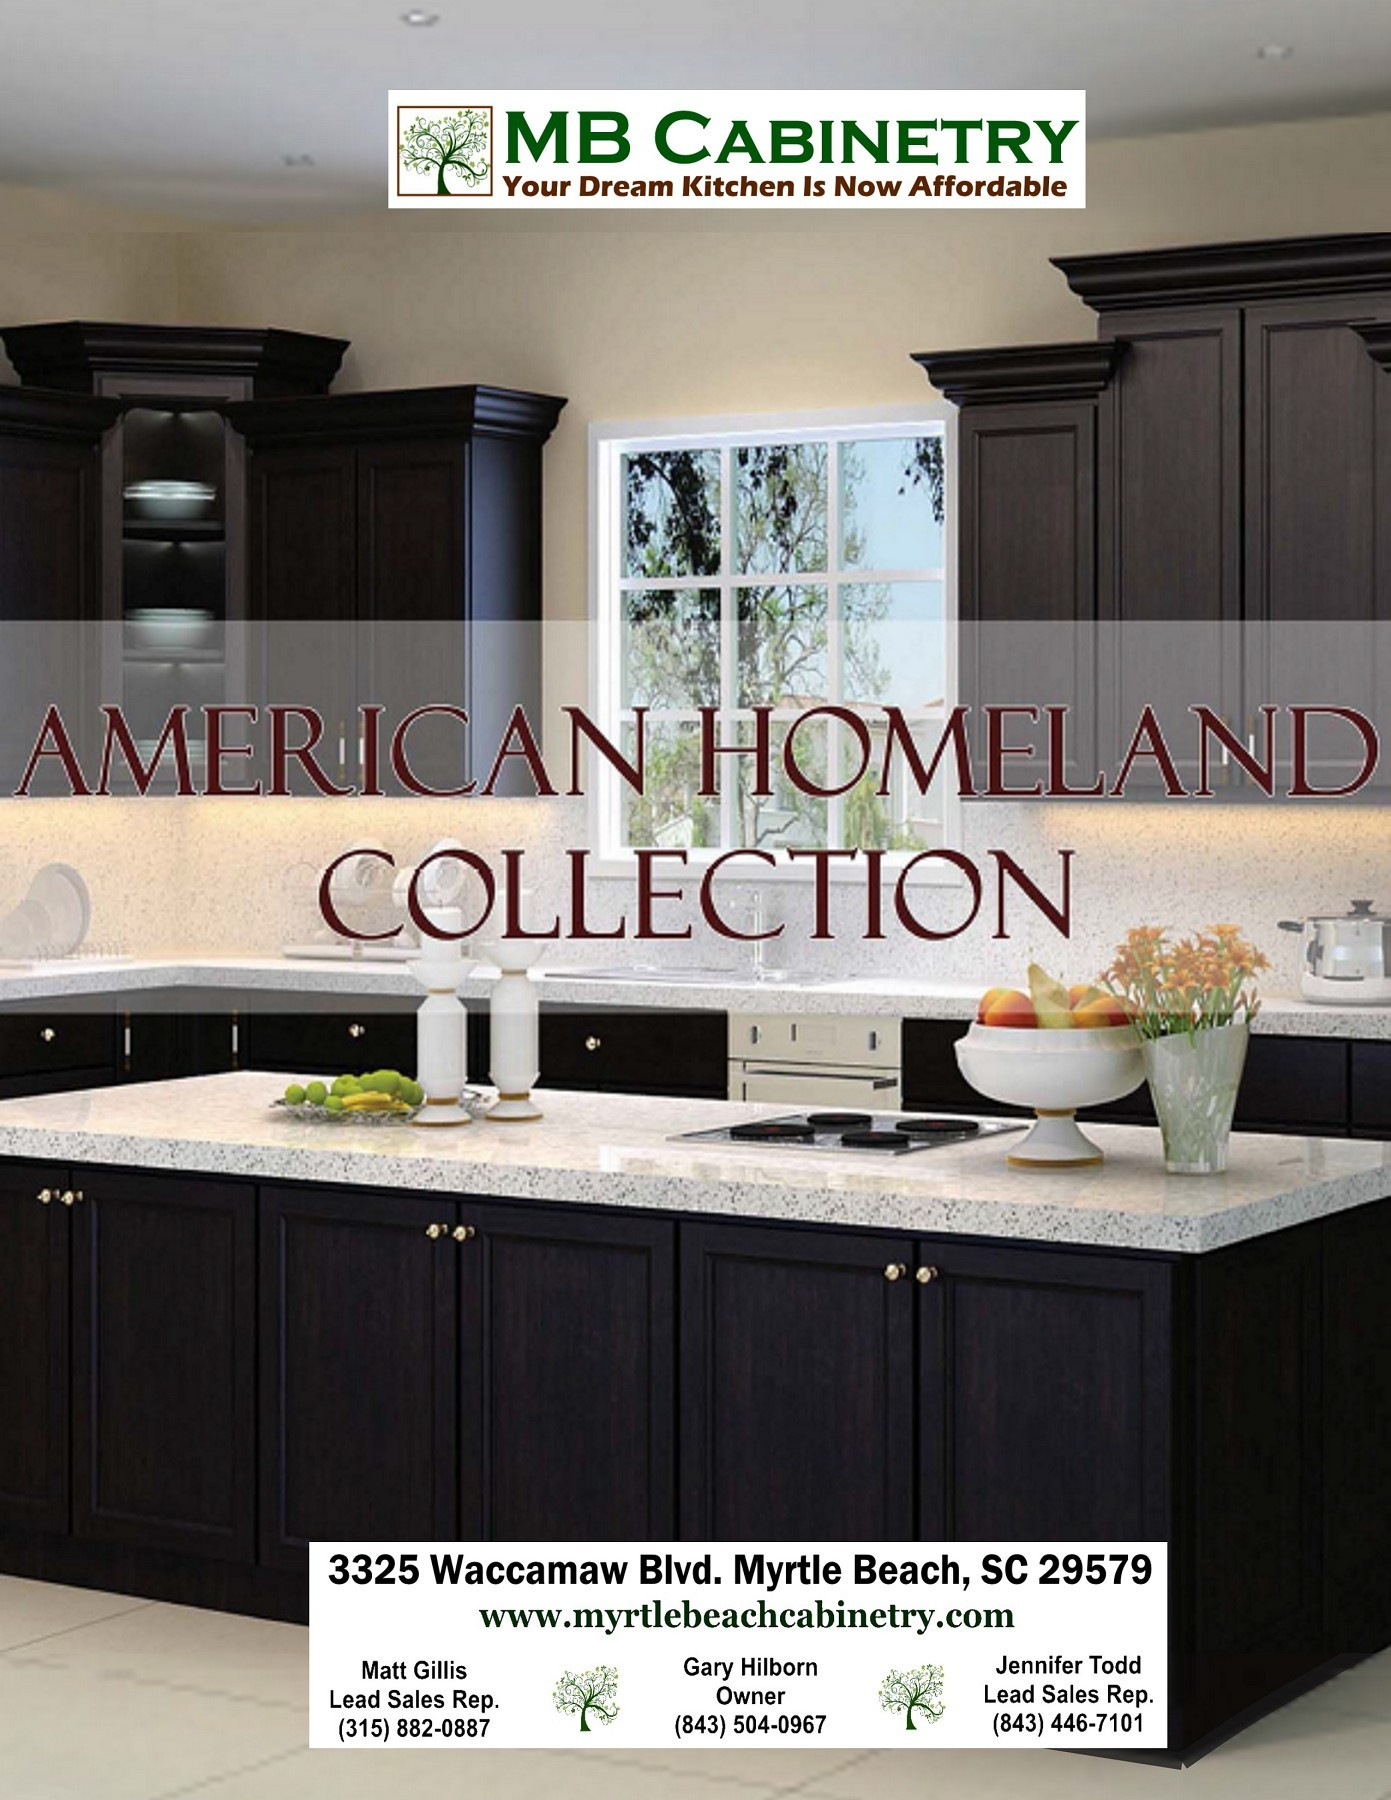 American Homeland Collection Cabinets